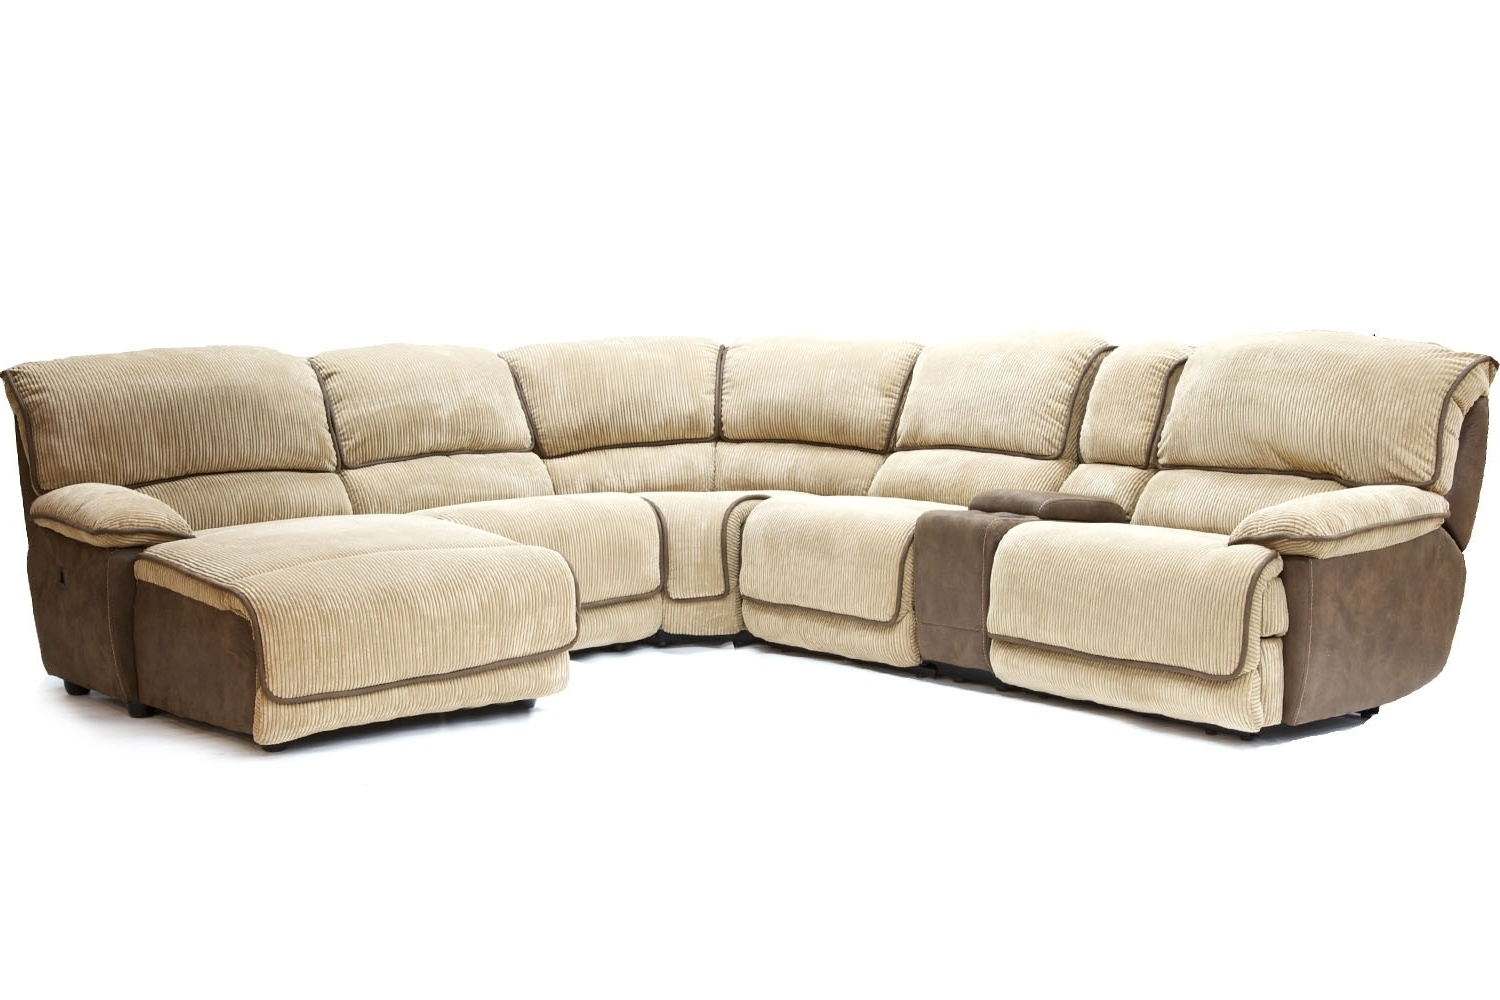 Well Liked Austin Sectional Sofas Intended For Gallery Austin Sectional Sofa – Mediasupload (View 13 of 15)